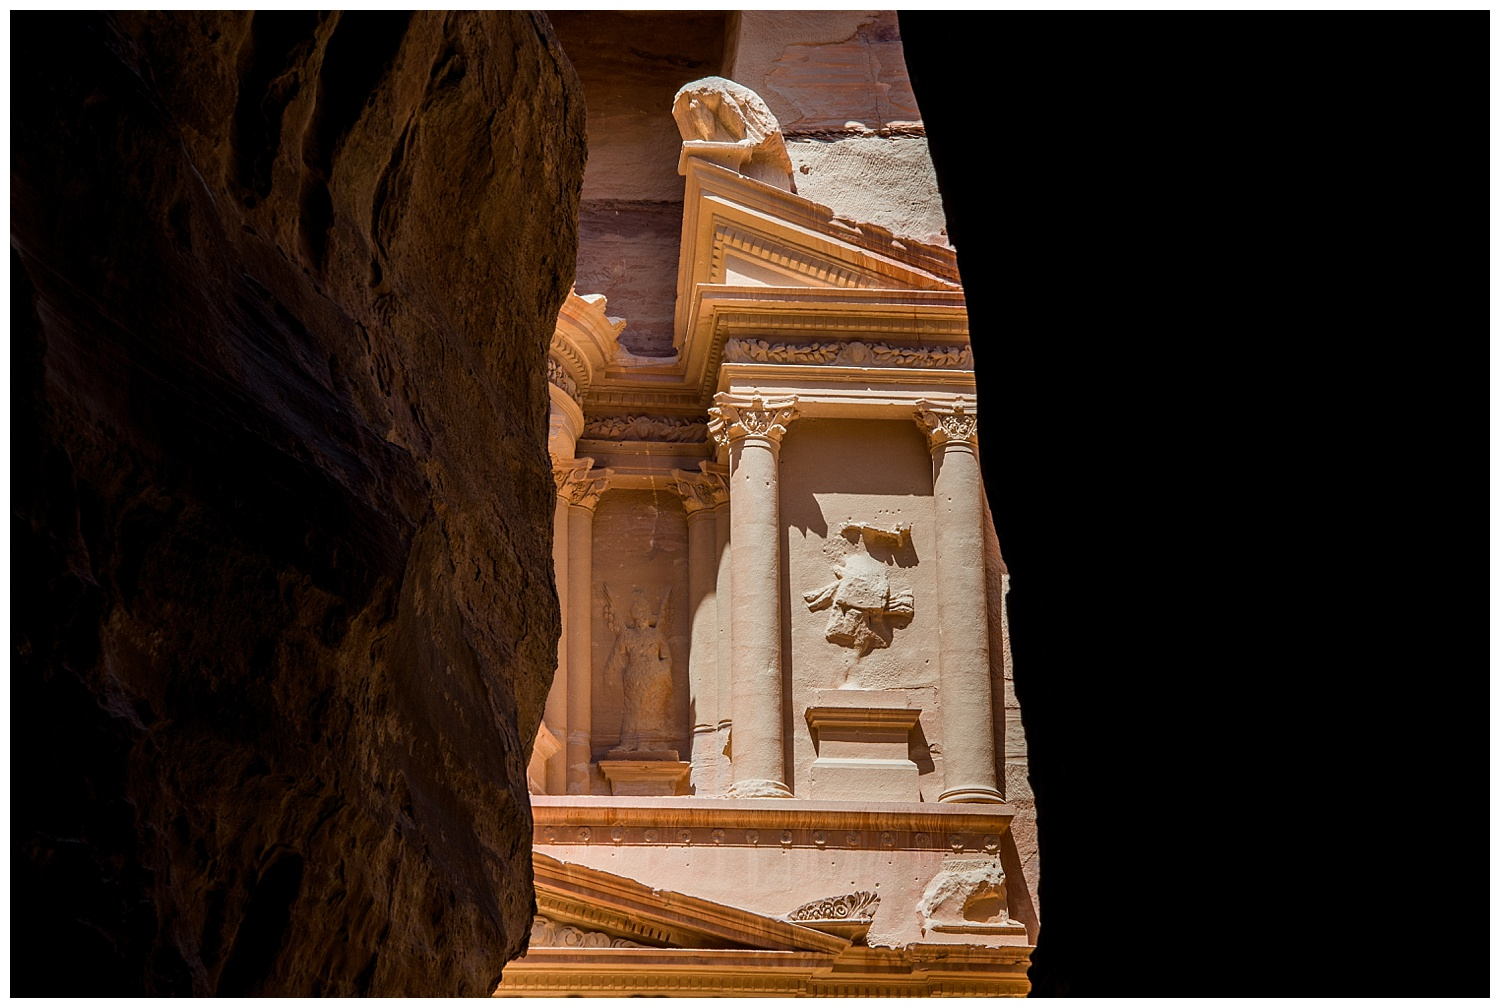 My first glimpse of the Treasury in Petra. Simply breath taking.